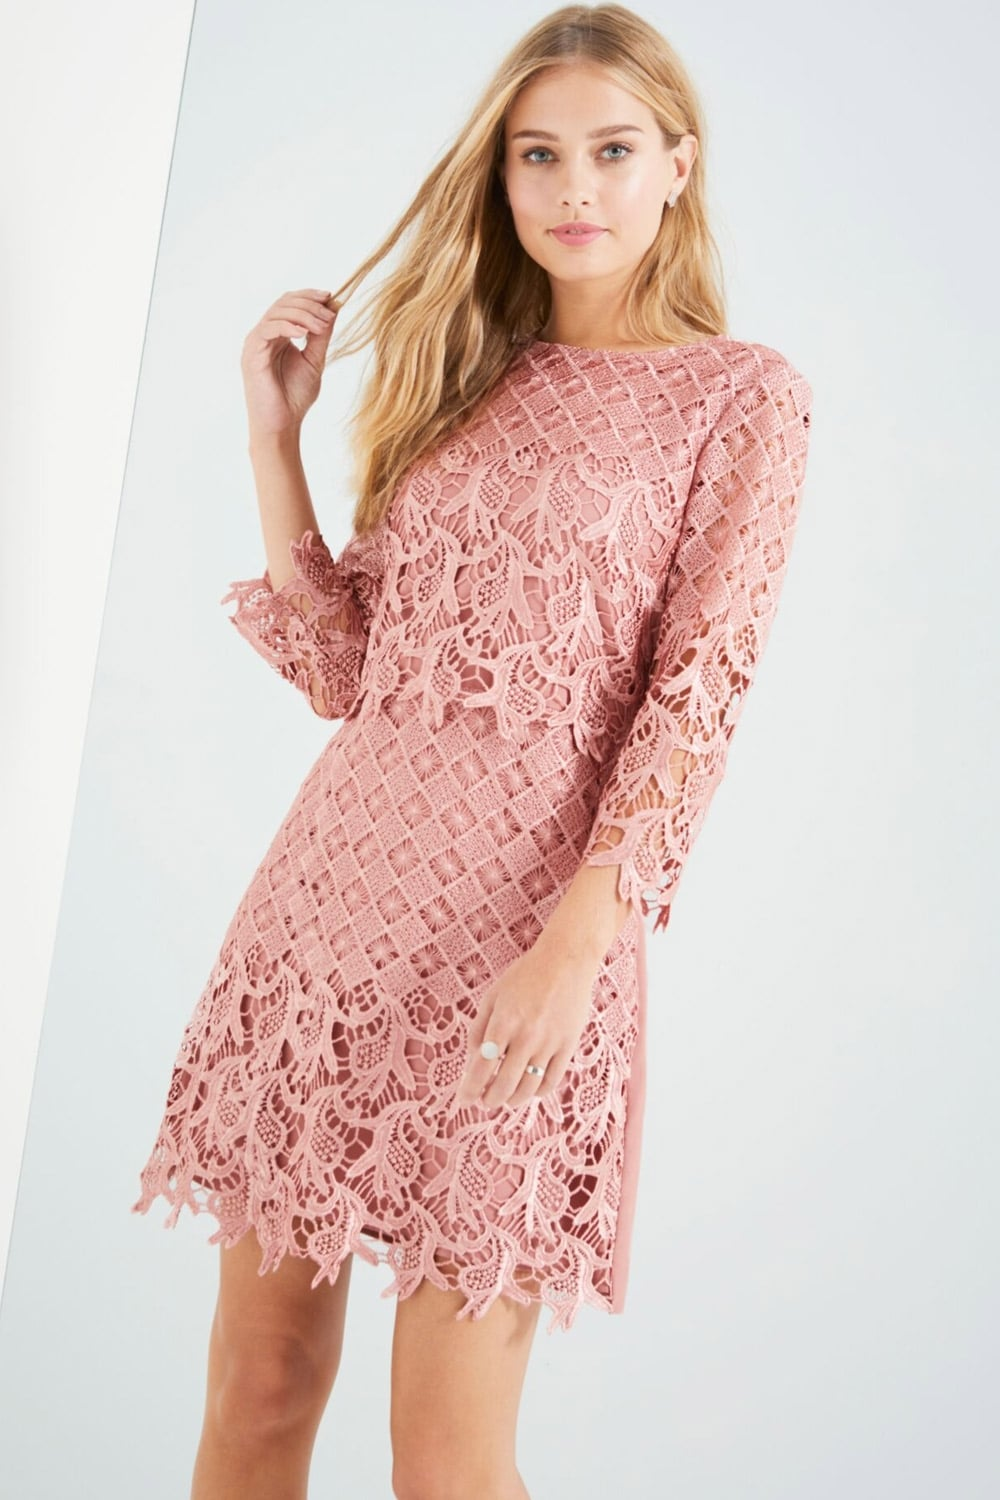 Little Mistress Apricot Crochet Shift Dress - Little Mistress from ...